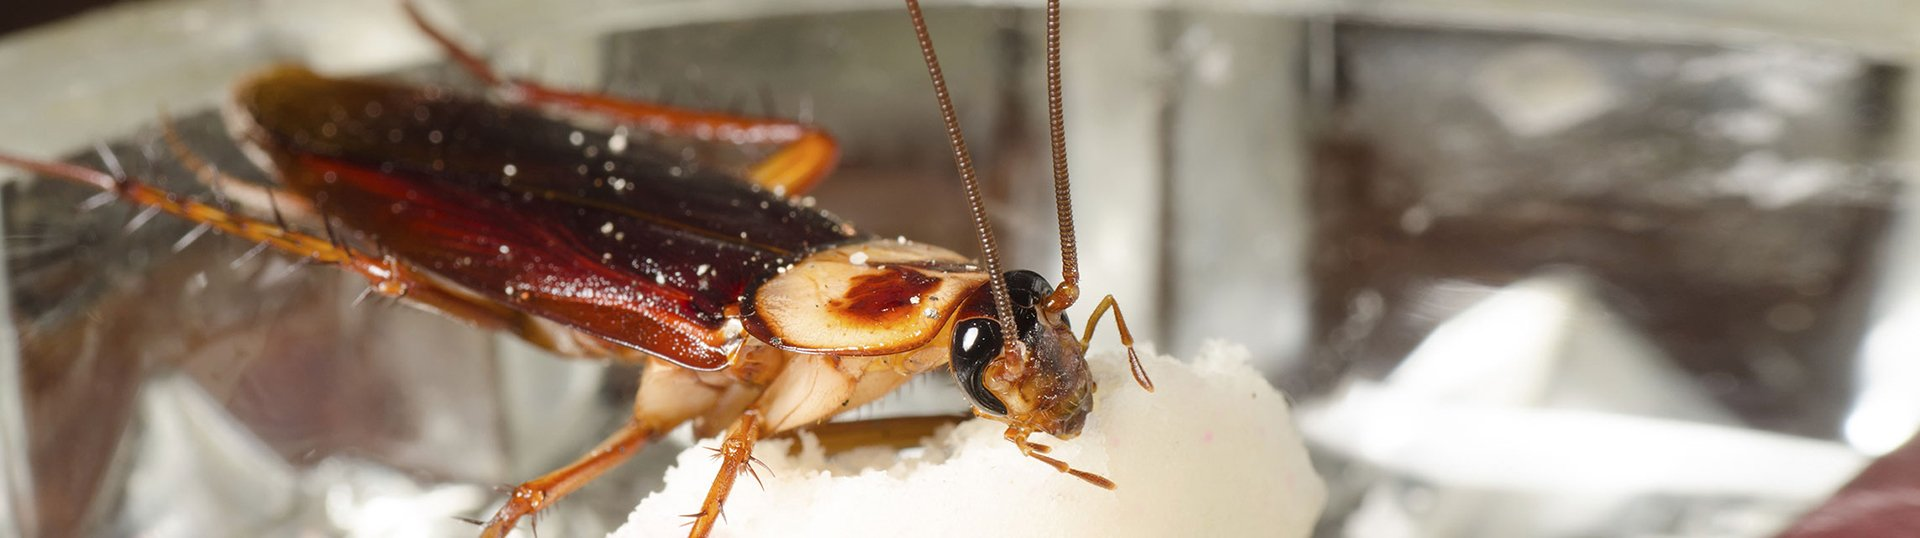 An insect feeding on a sugar cube